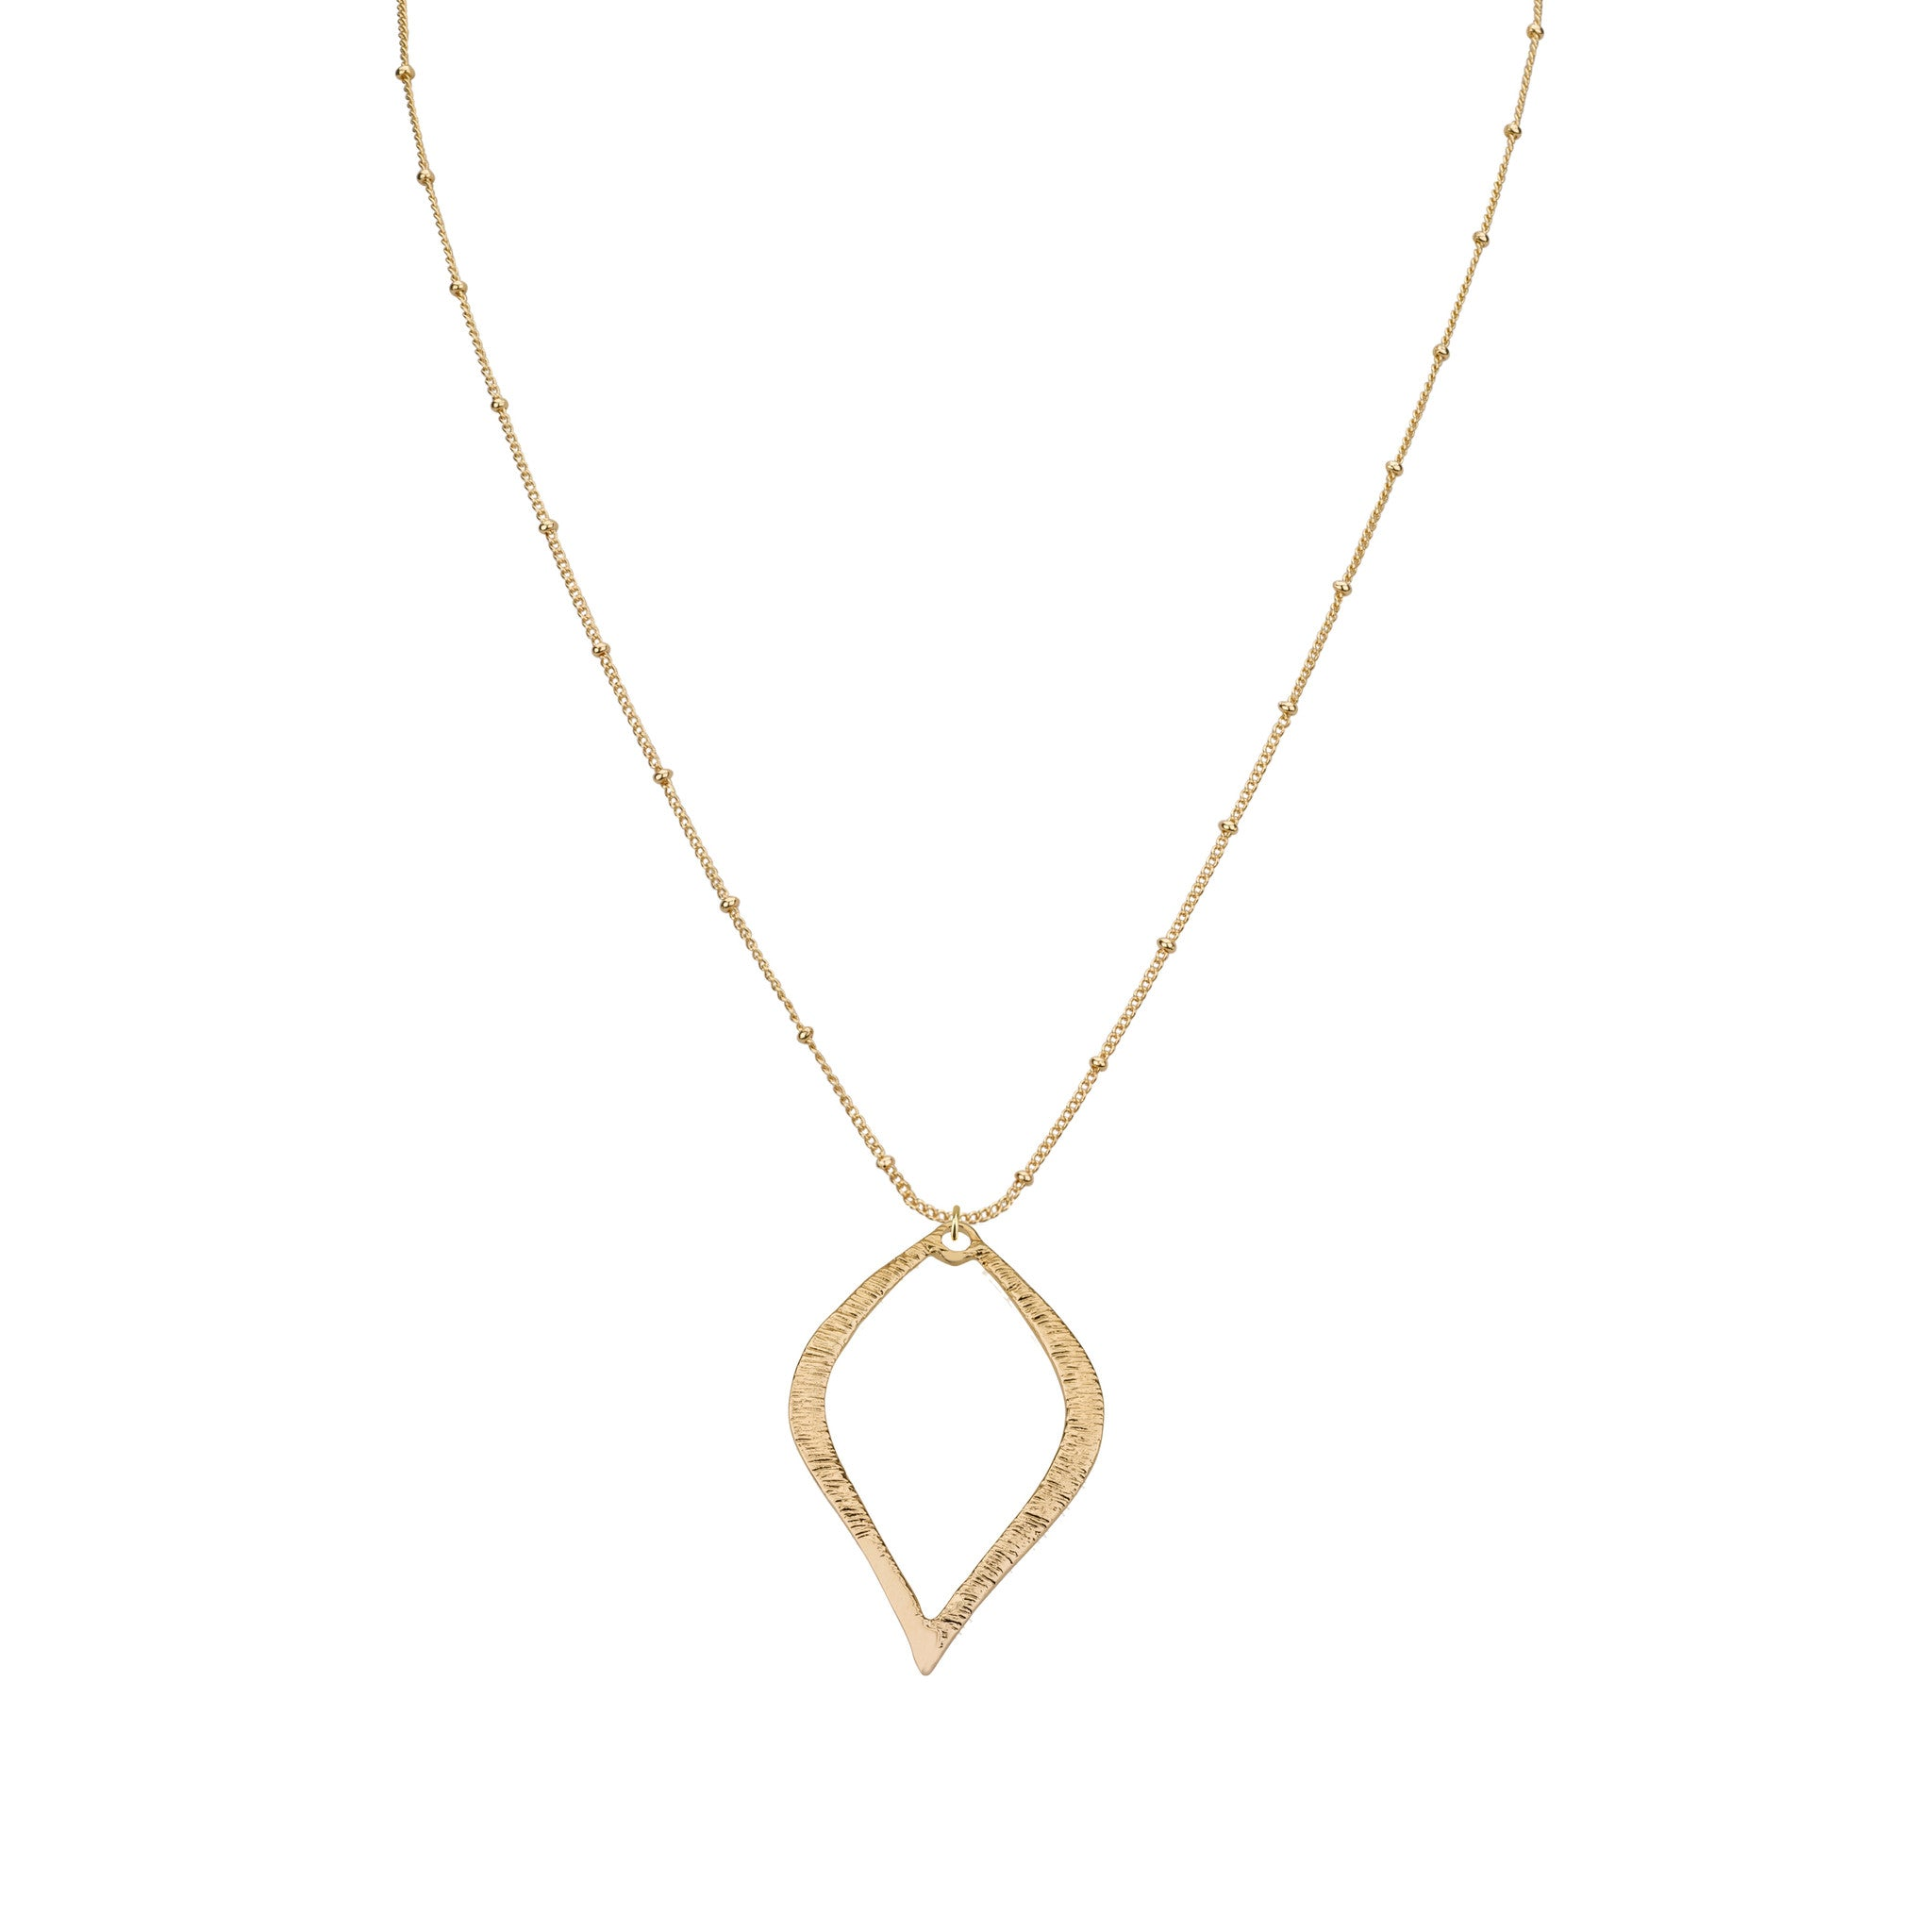 Necklaces - Outline Rain Drop & Sivan Chain Necklace